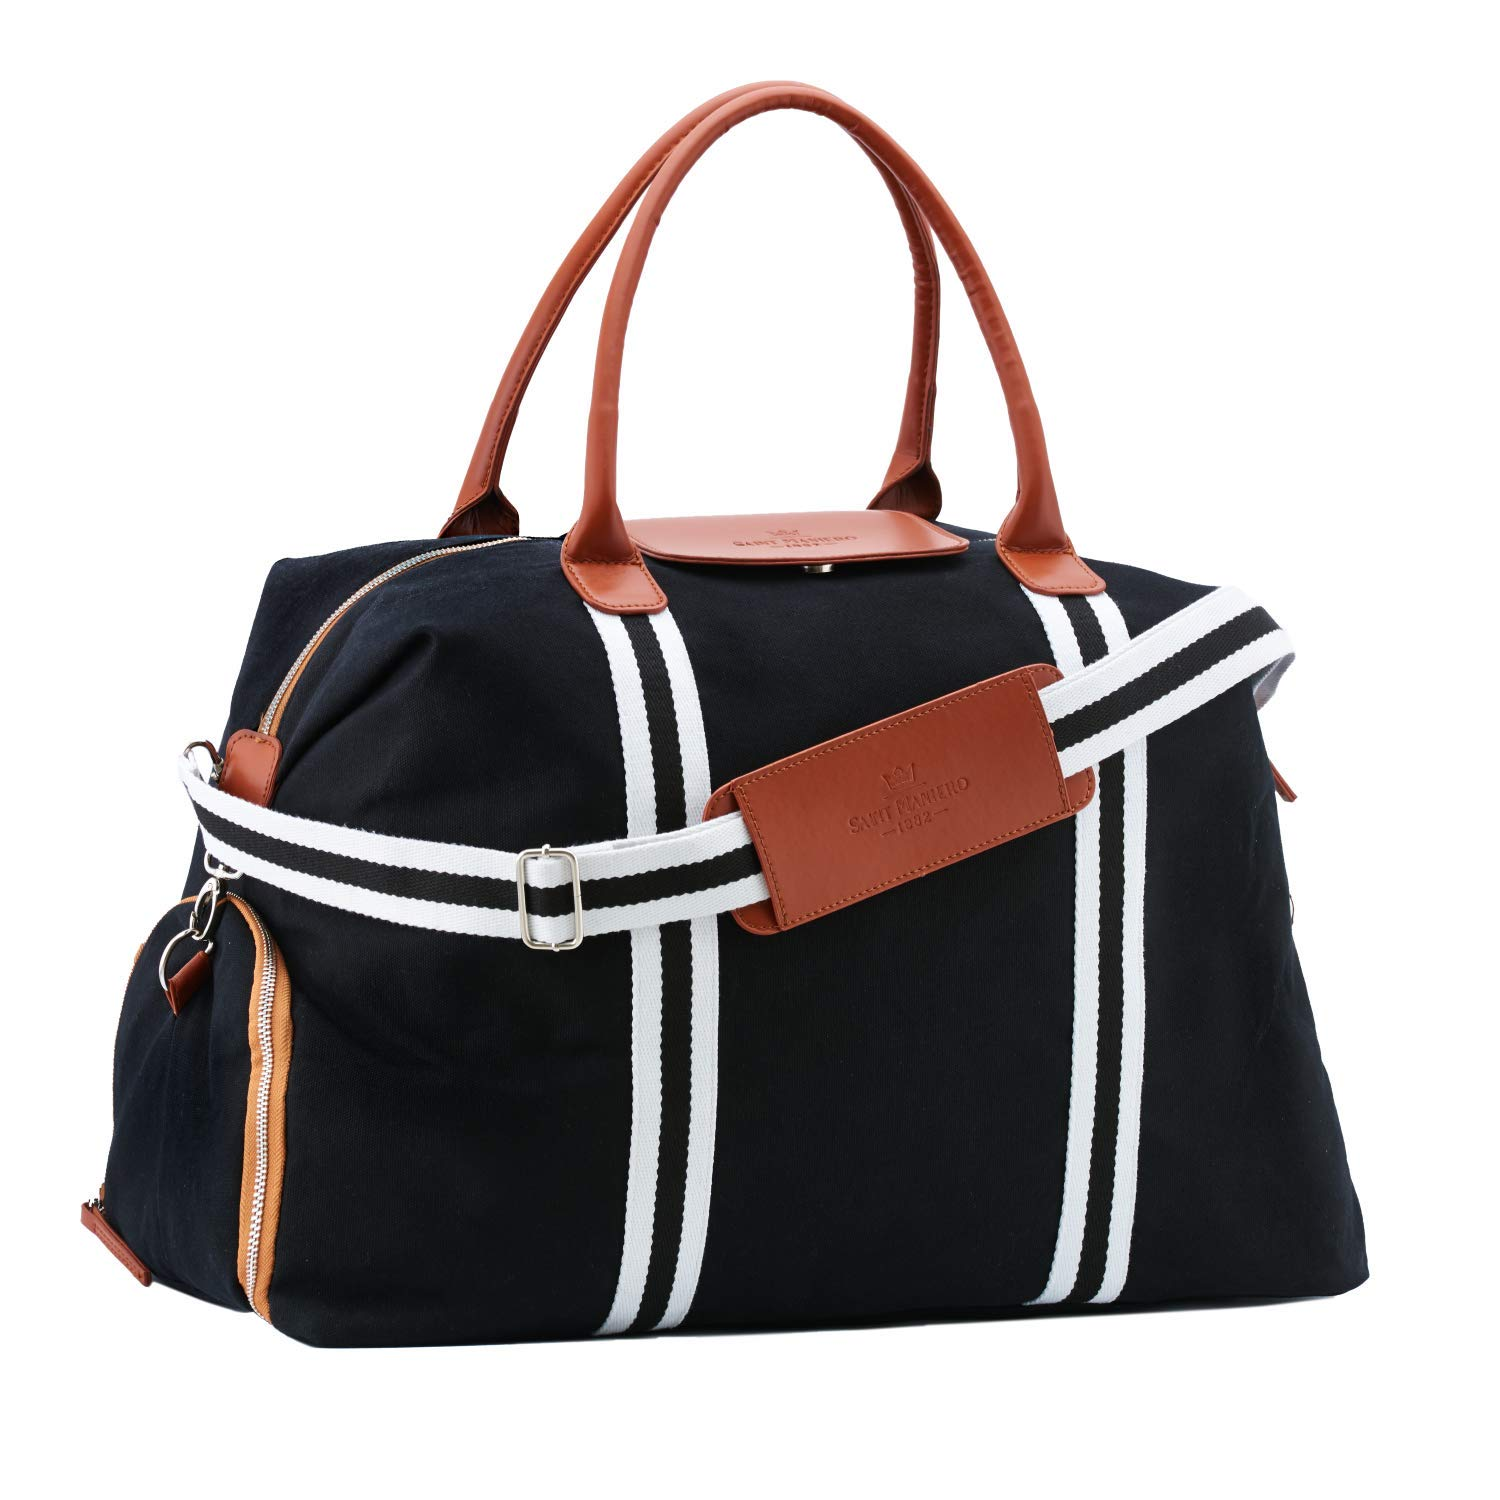 d3fb44fb6756 Saint Maniero Stylish Canvas Tote Travel Bag Carry on Overnight Bag Big Gym  Bag Leather Bag Large Duffle Bag Weekend Bag Big Tote Hand Luggage Bag  Travel ...